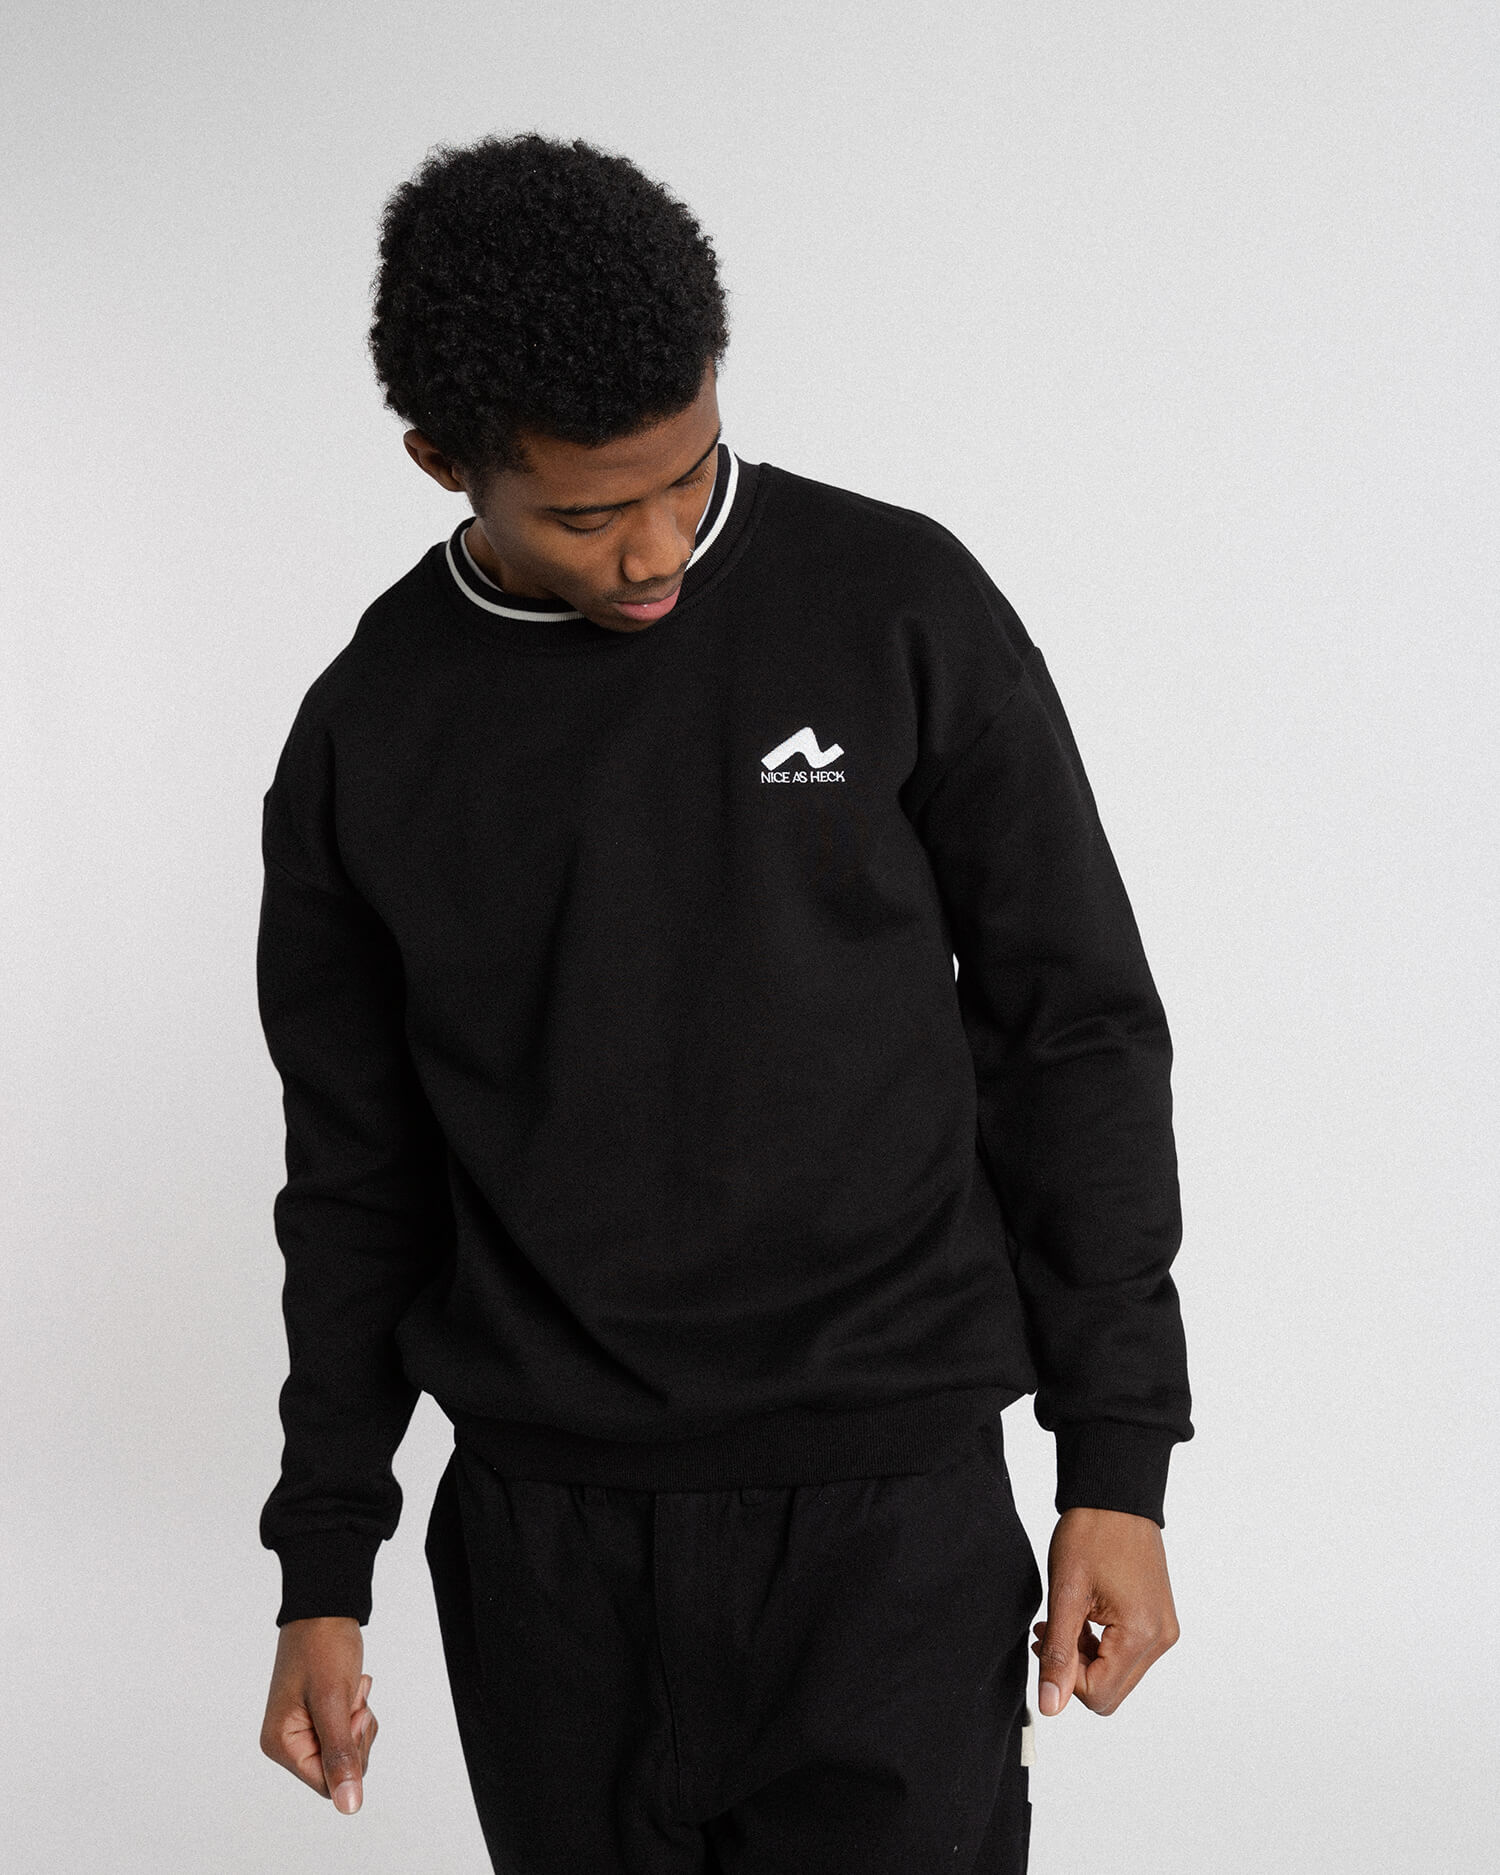 male model wearing the black campfire crewneck front view